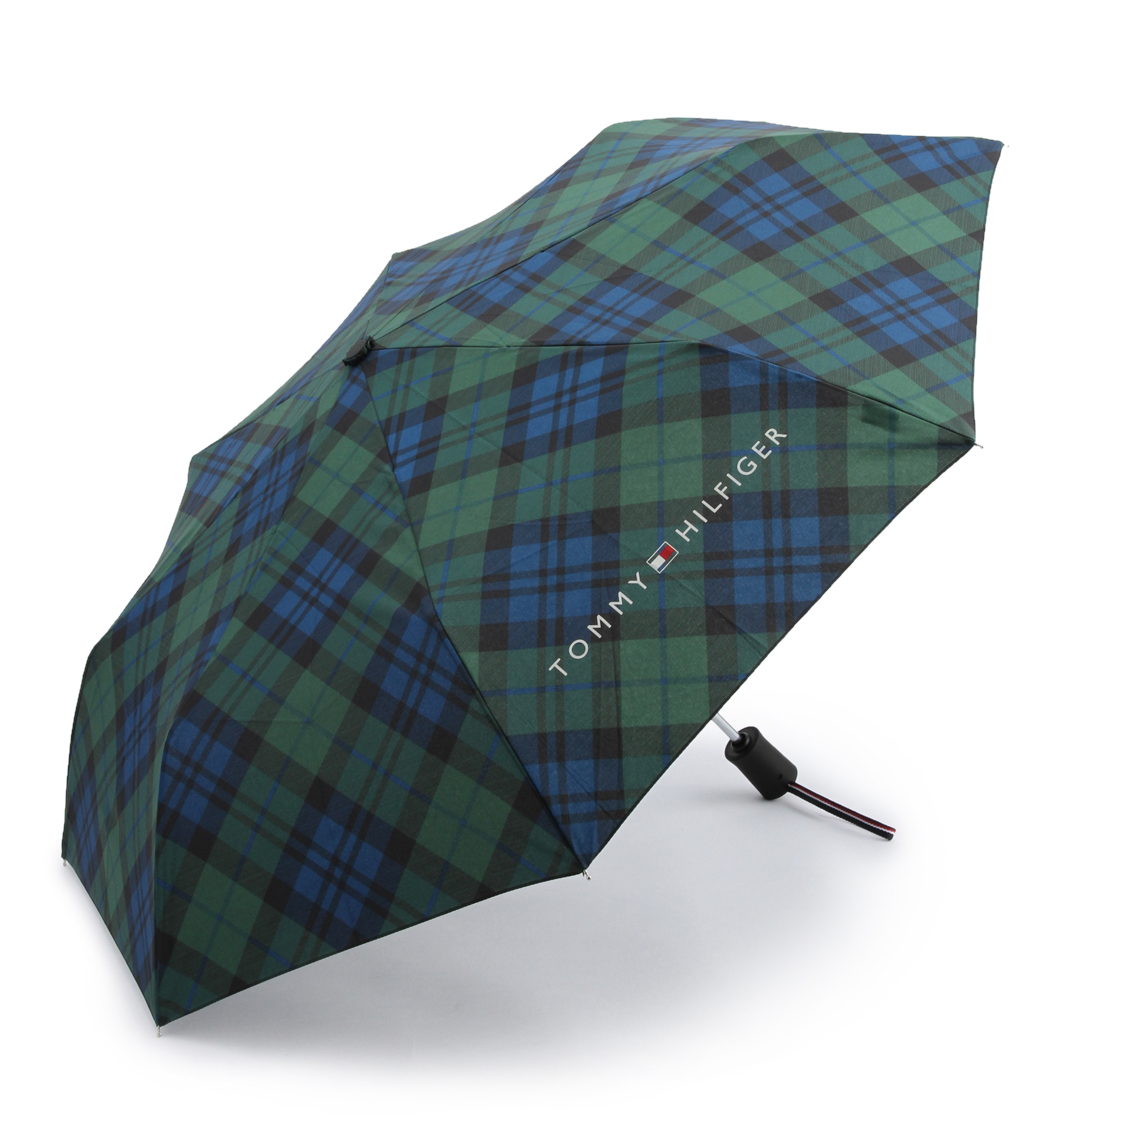 TH UMBRELLA